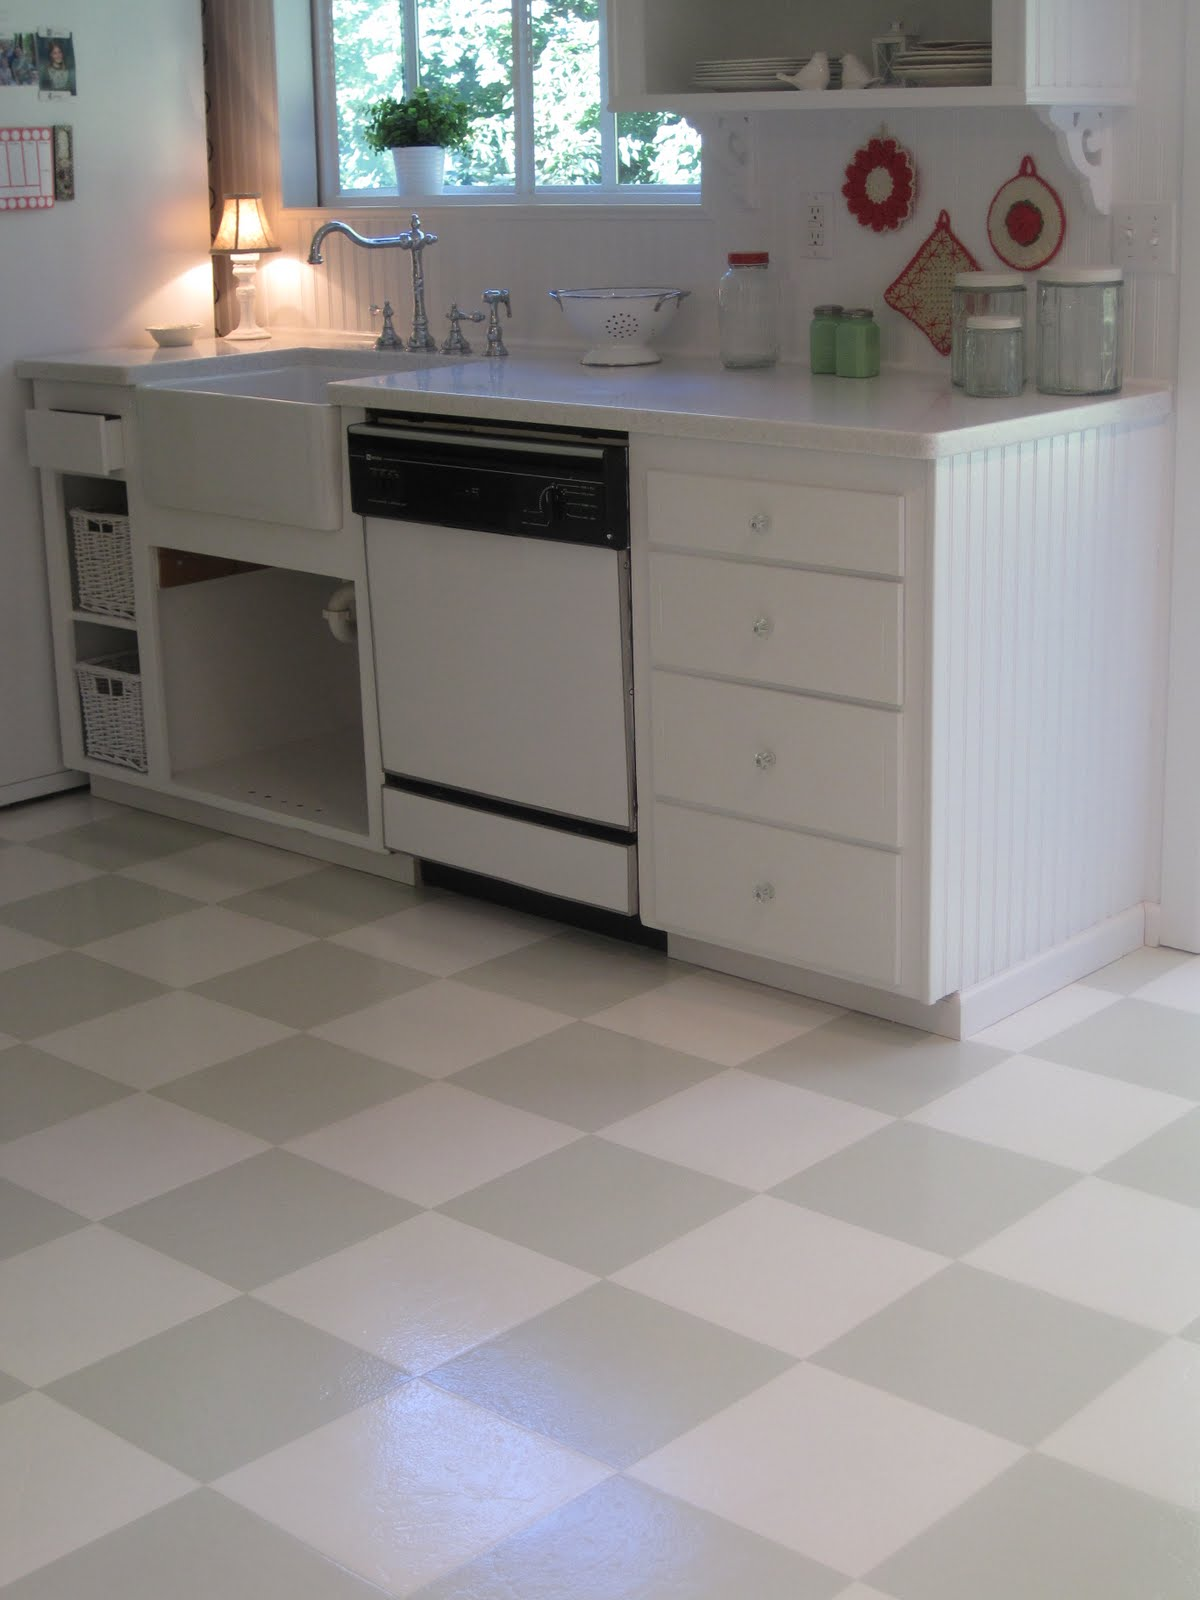 Kitchen floor reveal